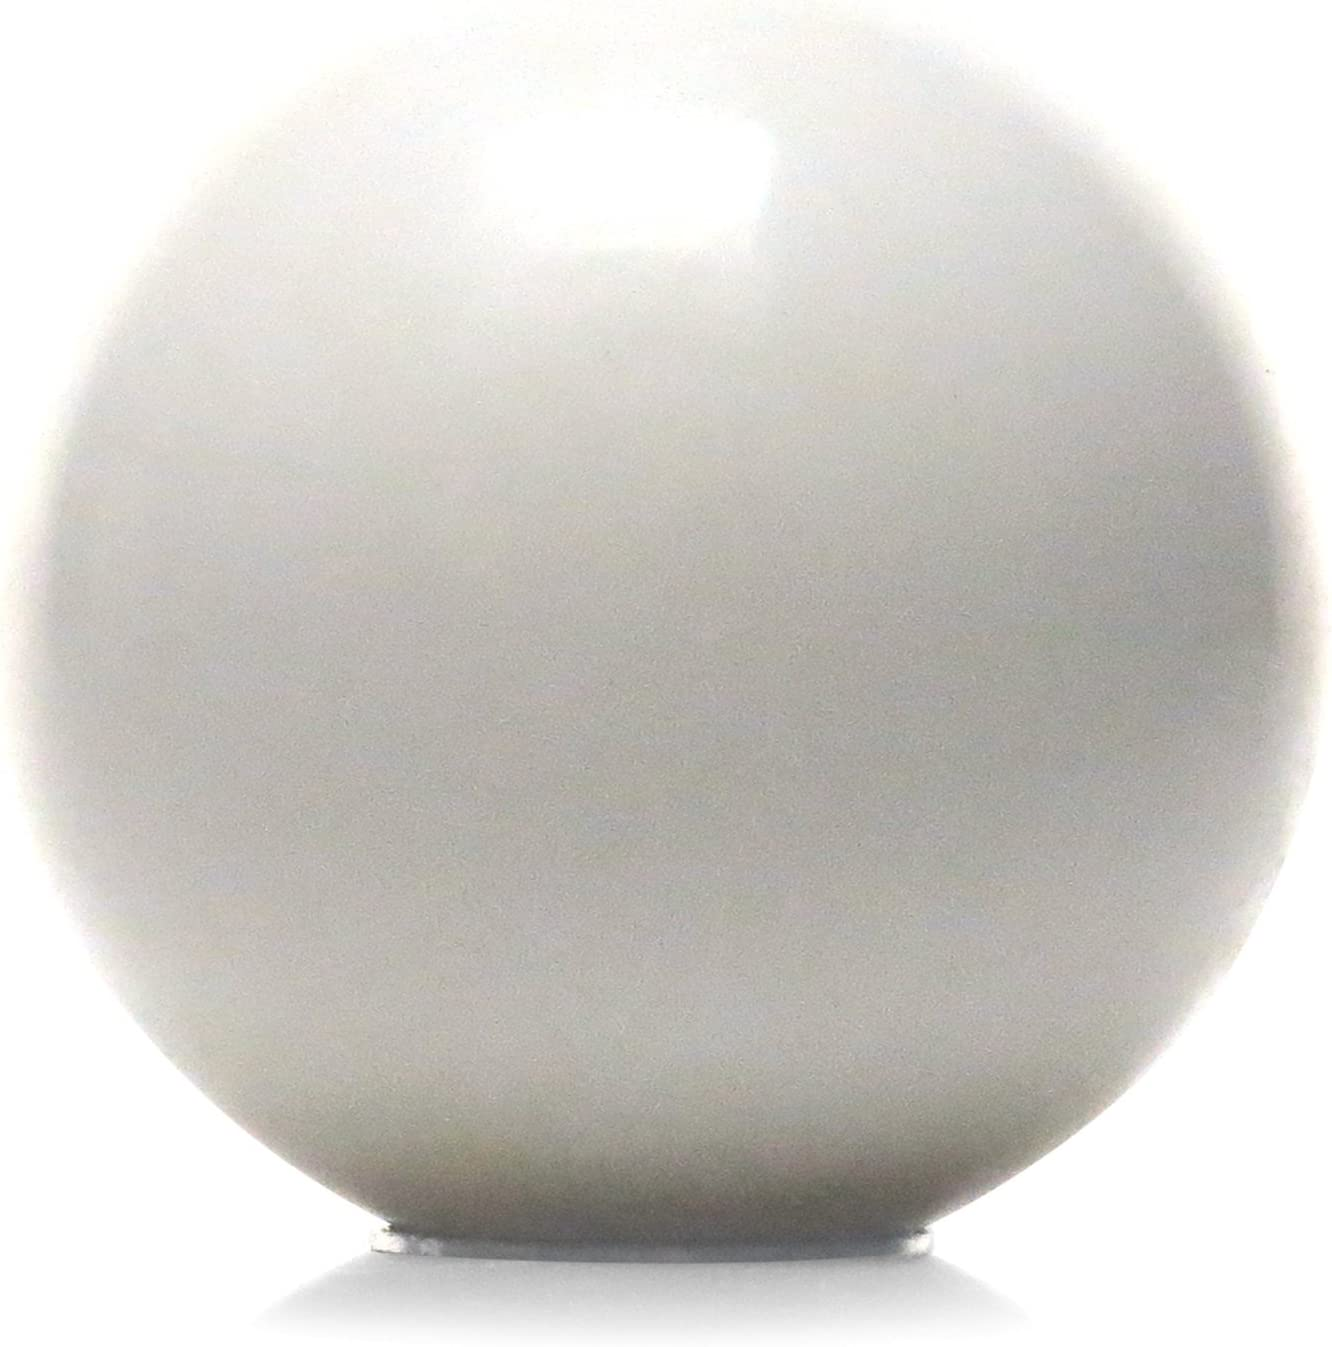 White Shift Pattern OS26n American Shifter 77065 Ivory Shift Knob with M16 x 1.5 Insert